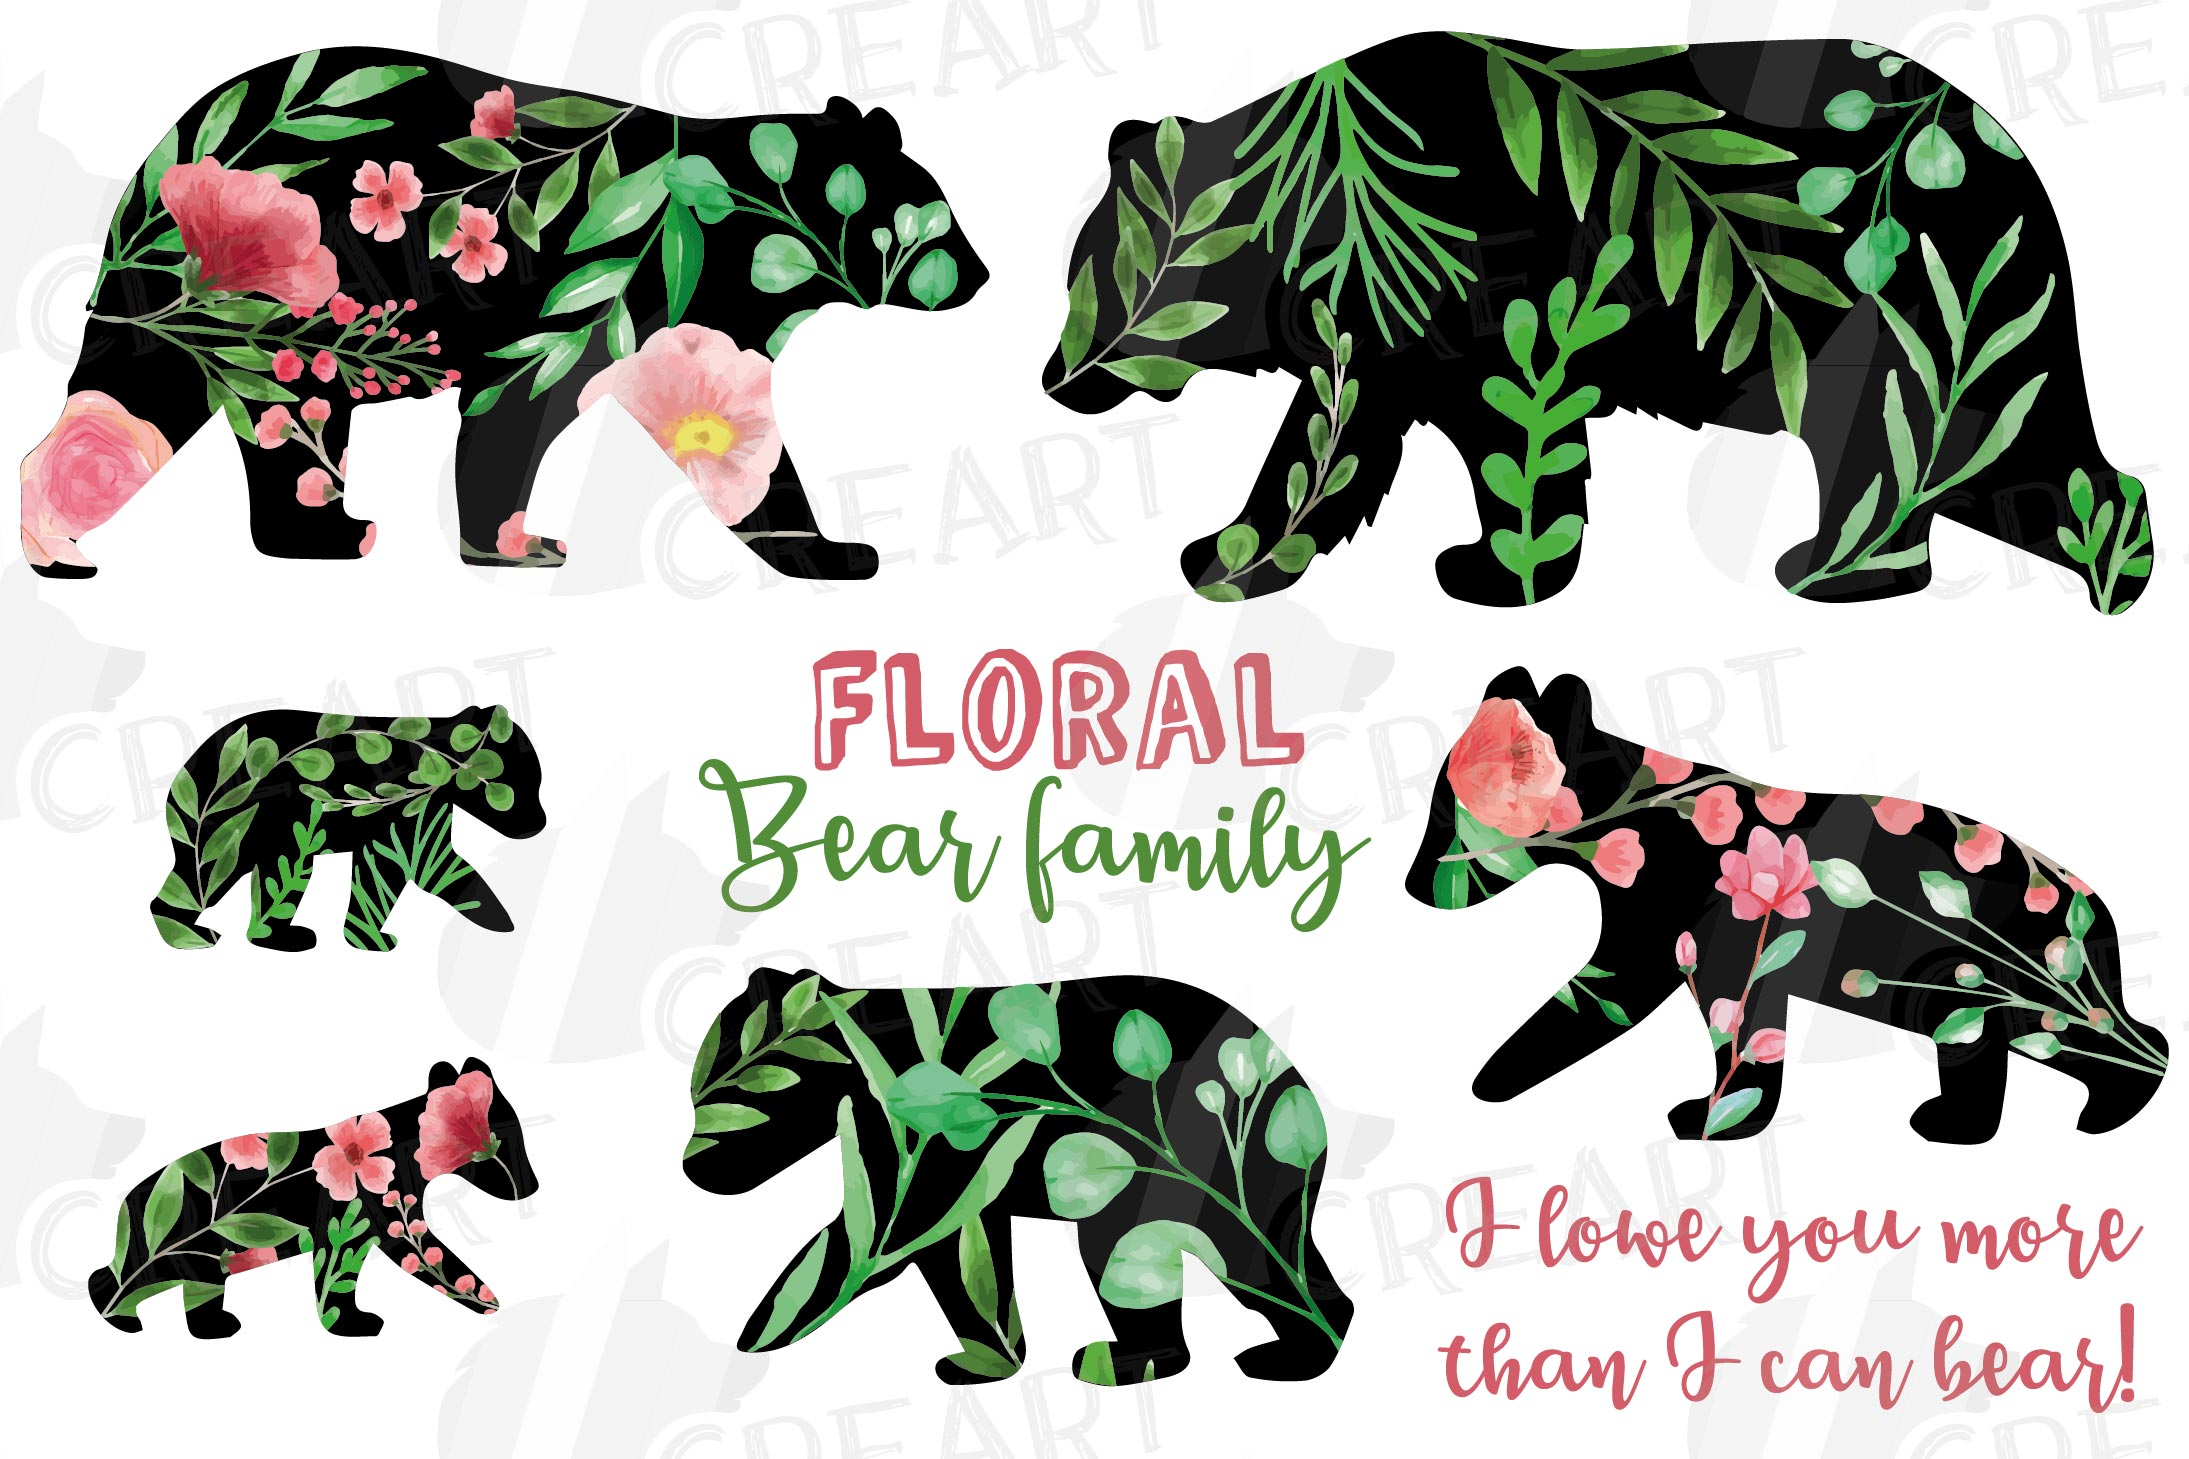 Floral bear family, sister, brother, baby, papa and mama example image 2